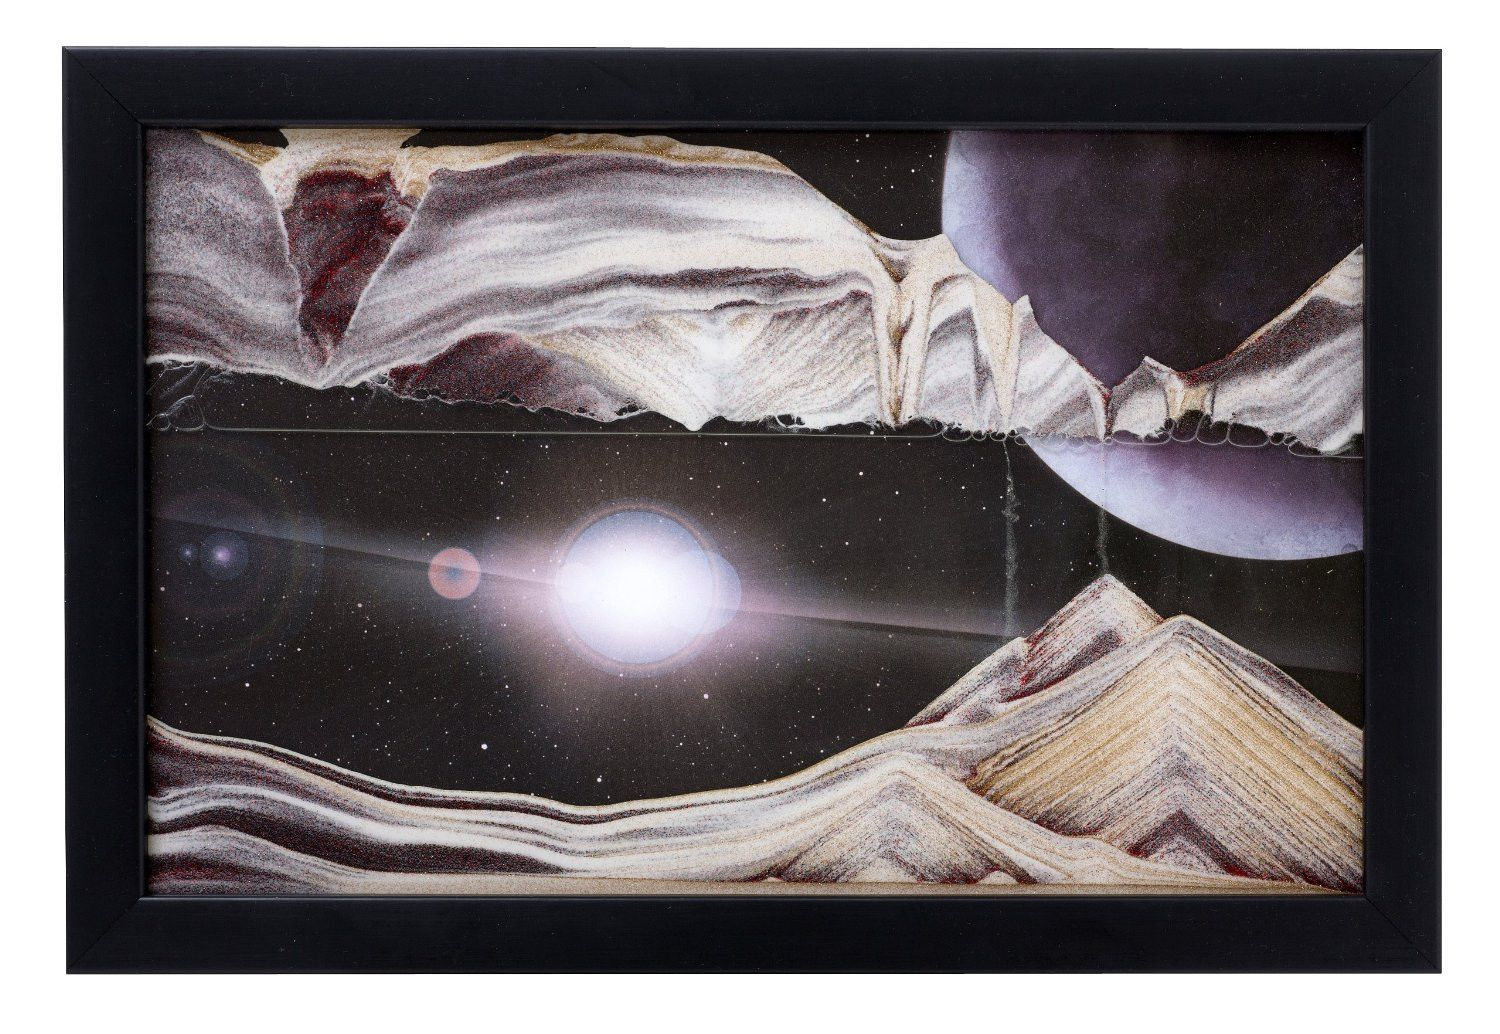 moving sand art picture outer space in frame in movie series - Moving Picture Frame